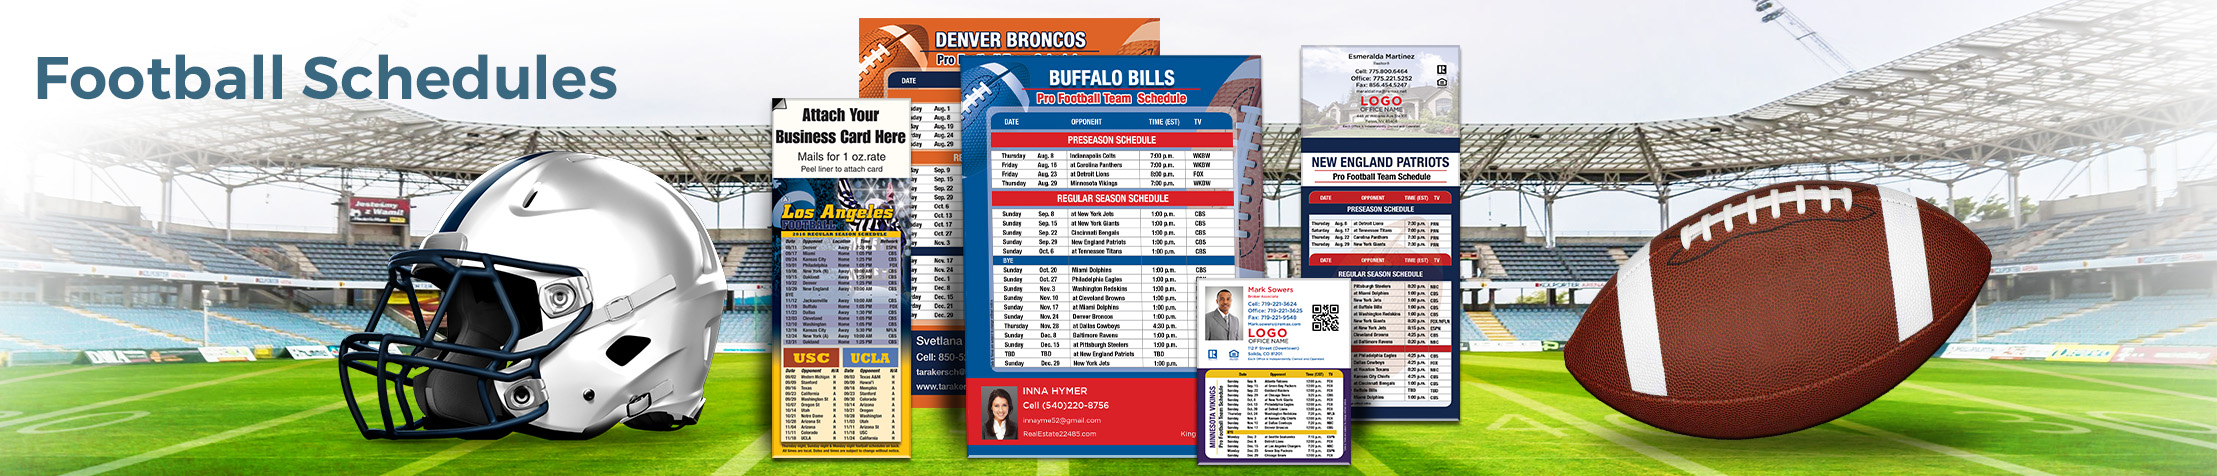 RE/MAX Real Estate Football Schedules - RE/MAX personalized football schedules | BestPrintBuy.com